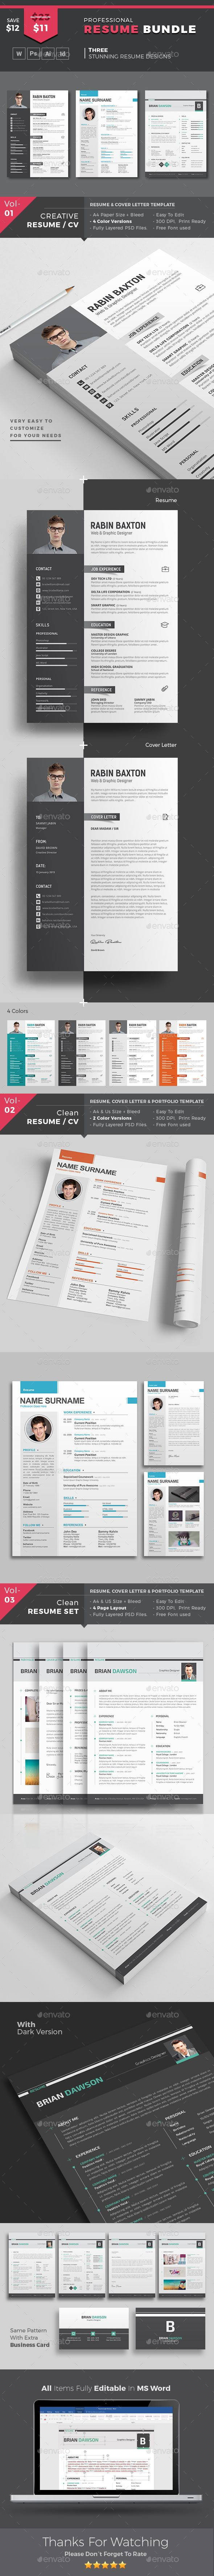 MS Word Resume Template Bundle Super